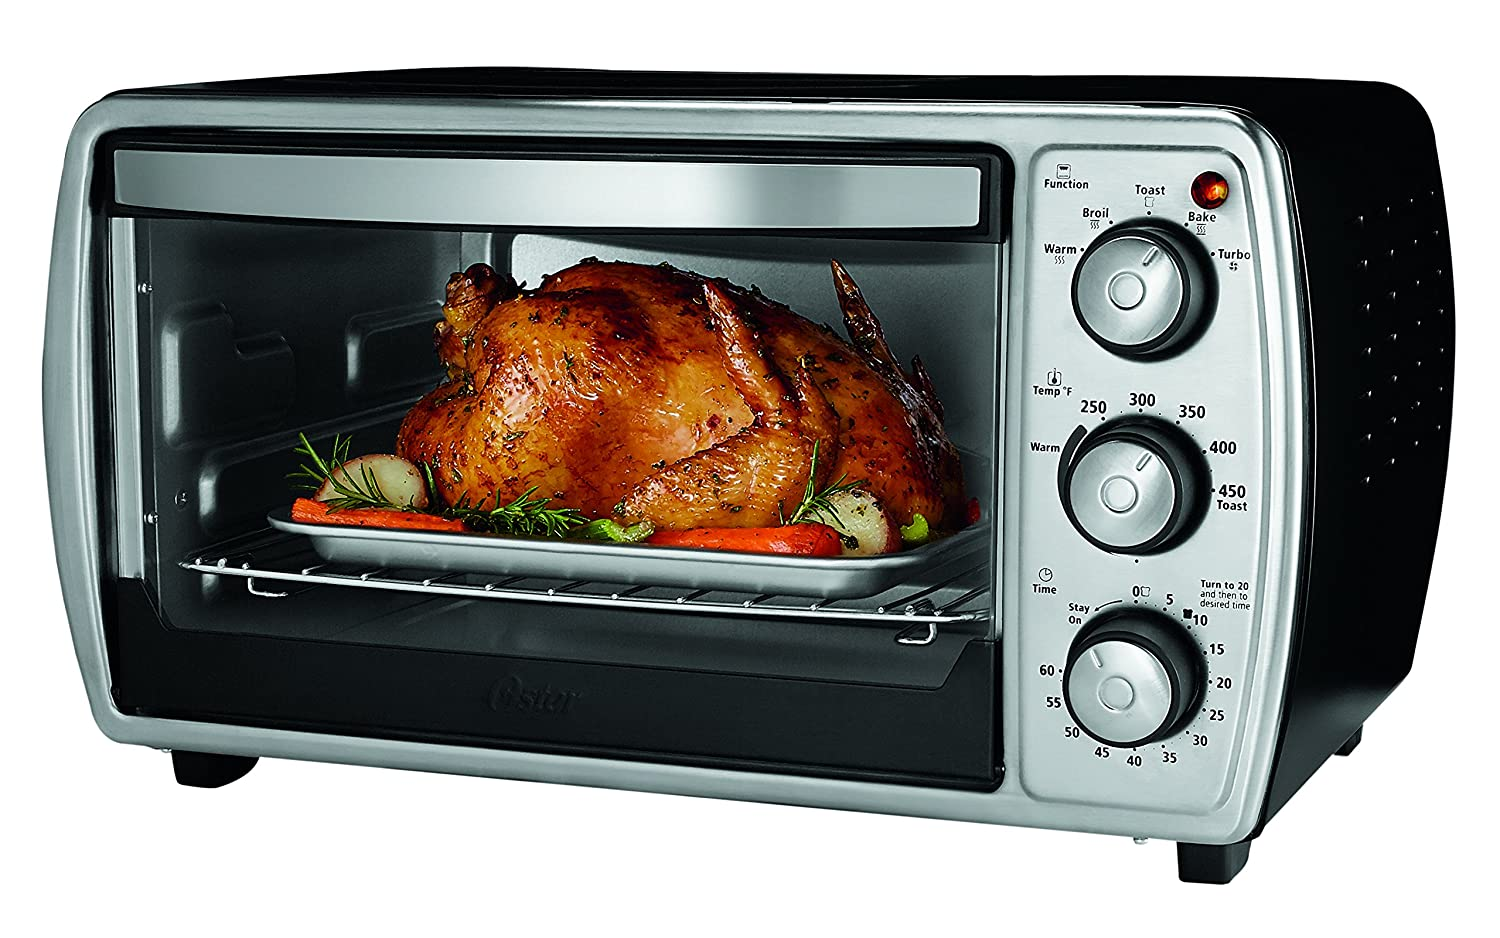 Oster 6-Slice Countertop Convection Toaster Oven, Silver (TSSTTVCGBK)